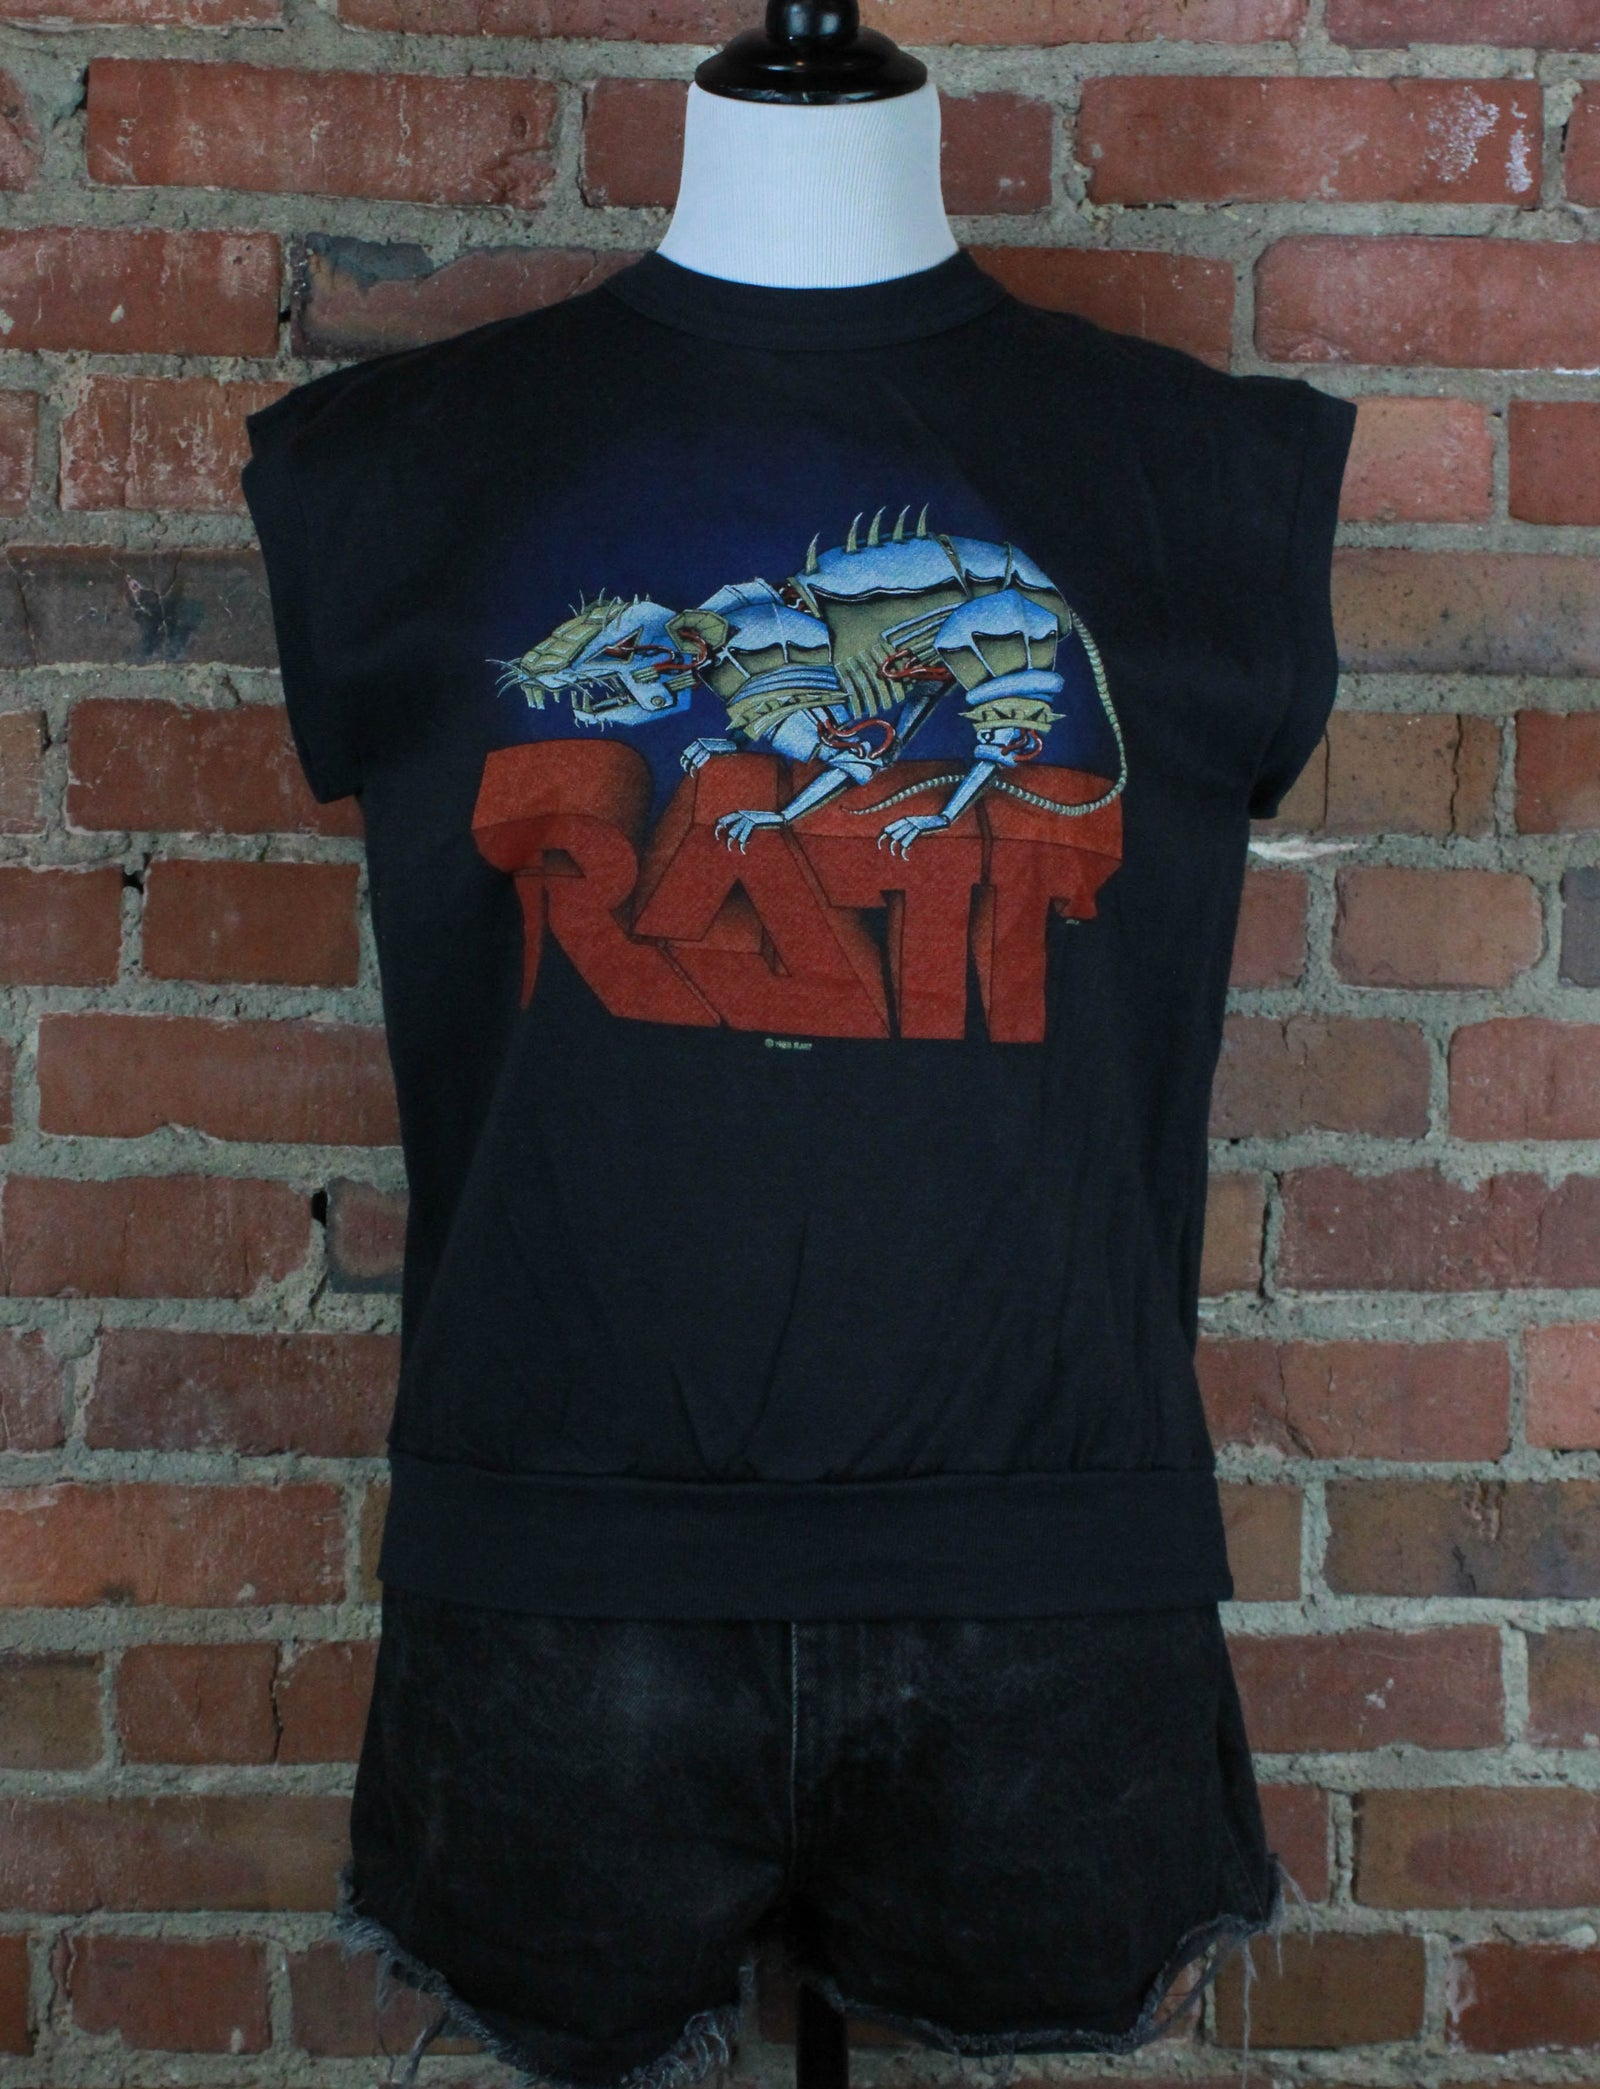 Vintage Ratt Concert T Shirt 1983 Fleece Lined Muscle Top - Small/Medium